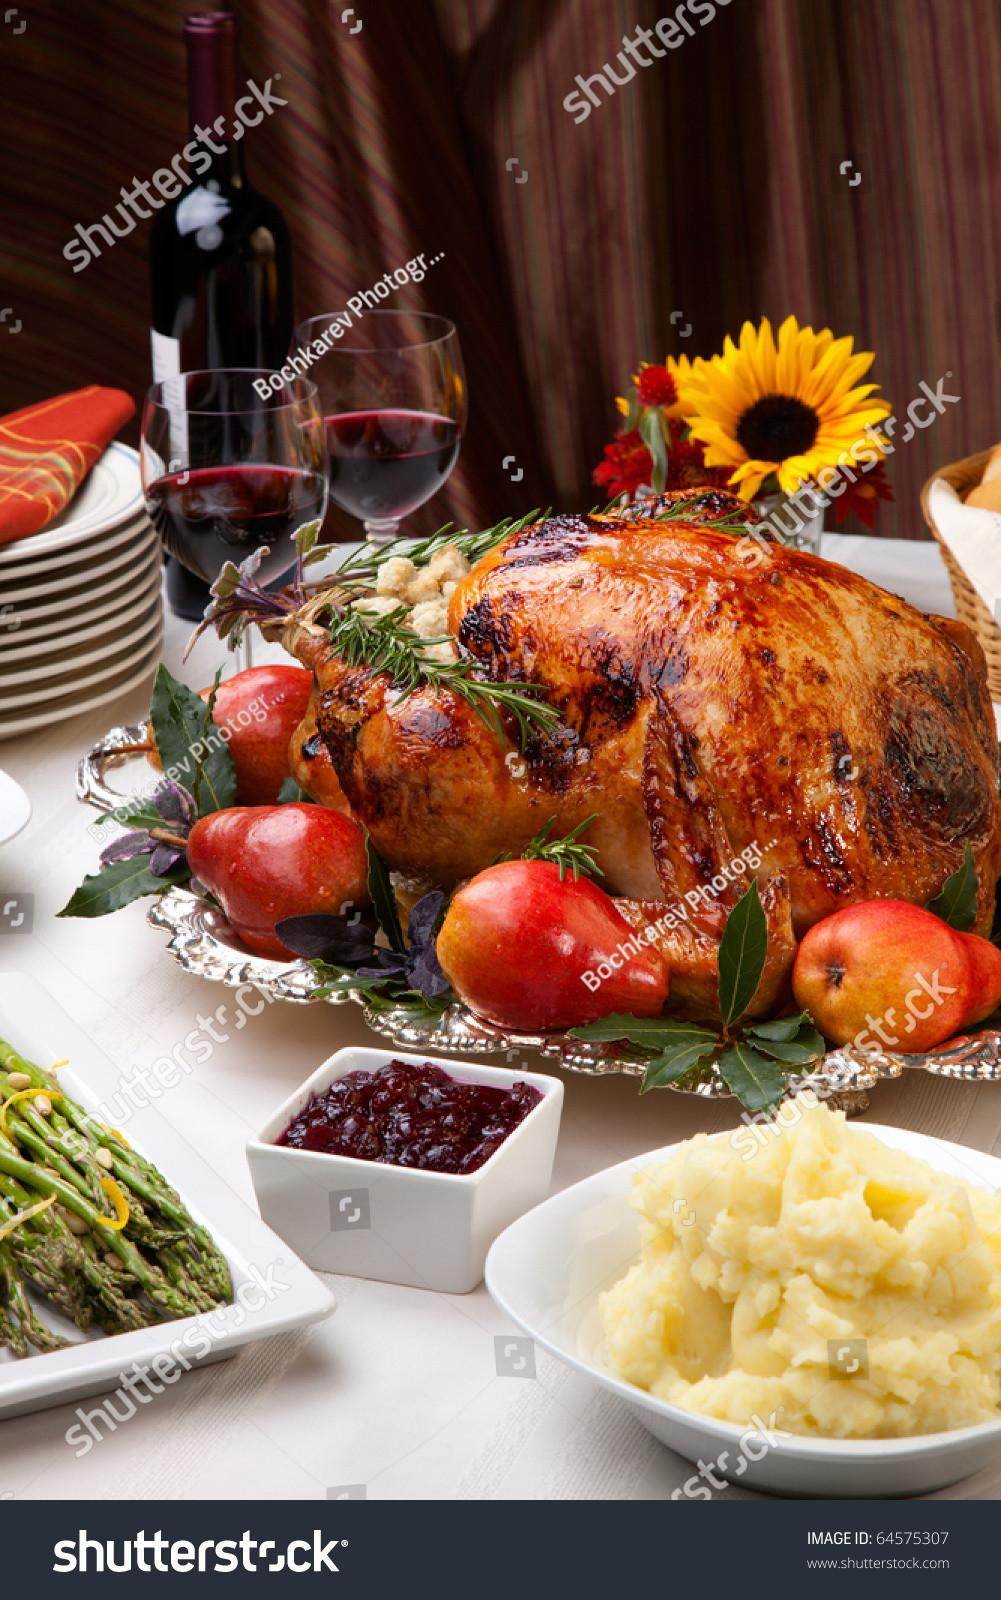 Delicious Roasted Turkey Savory Vegetable Side Dishes